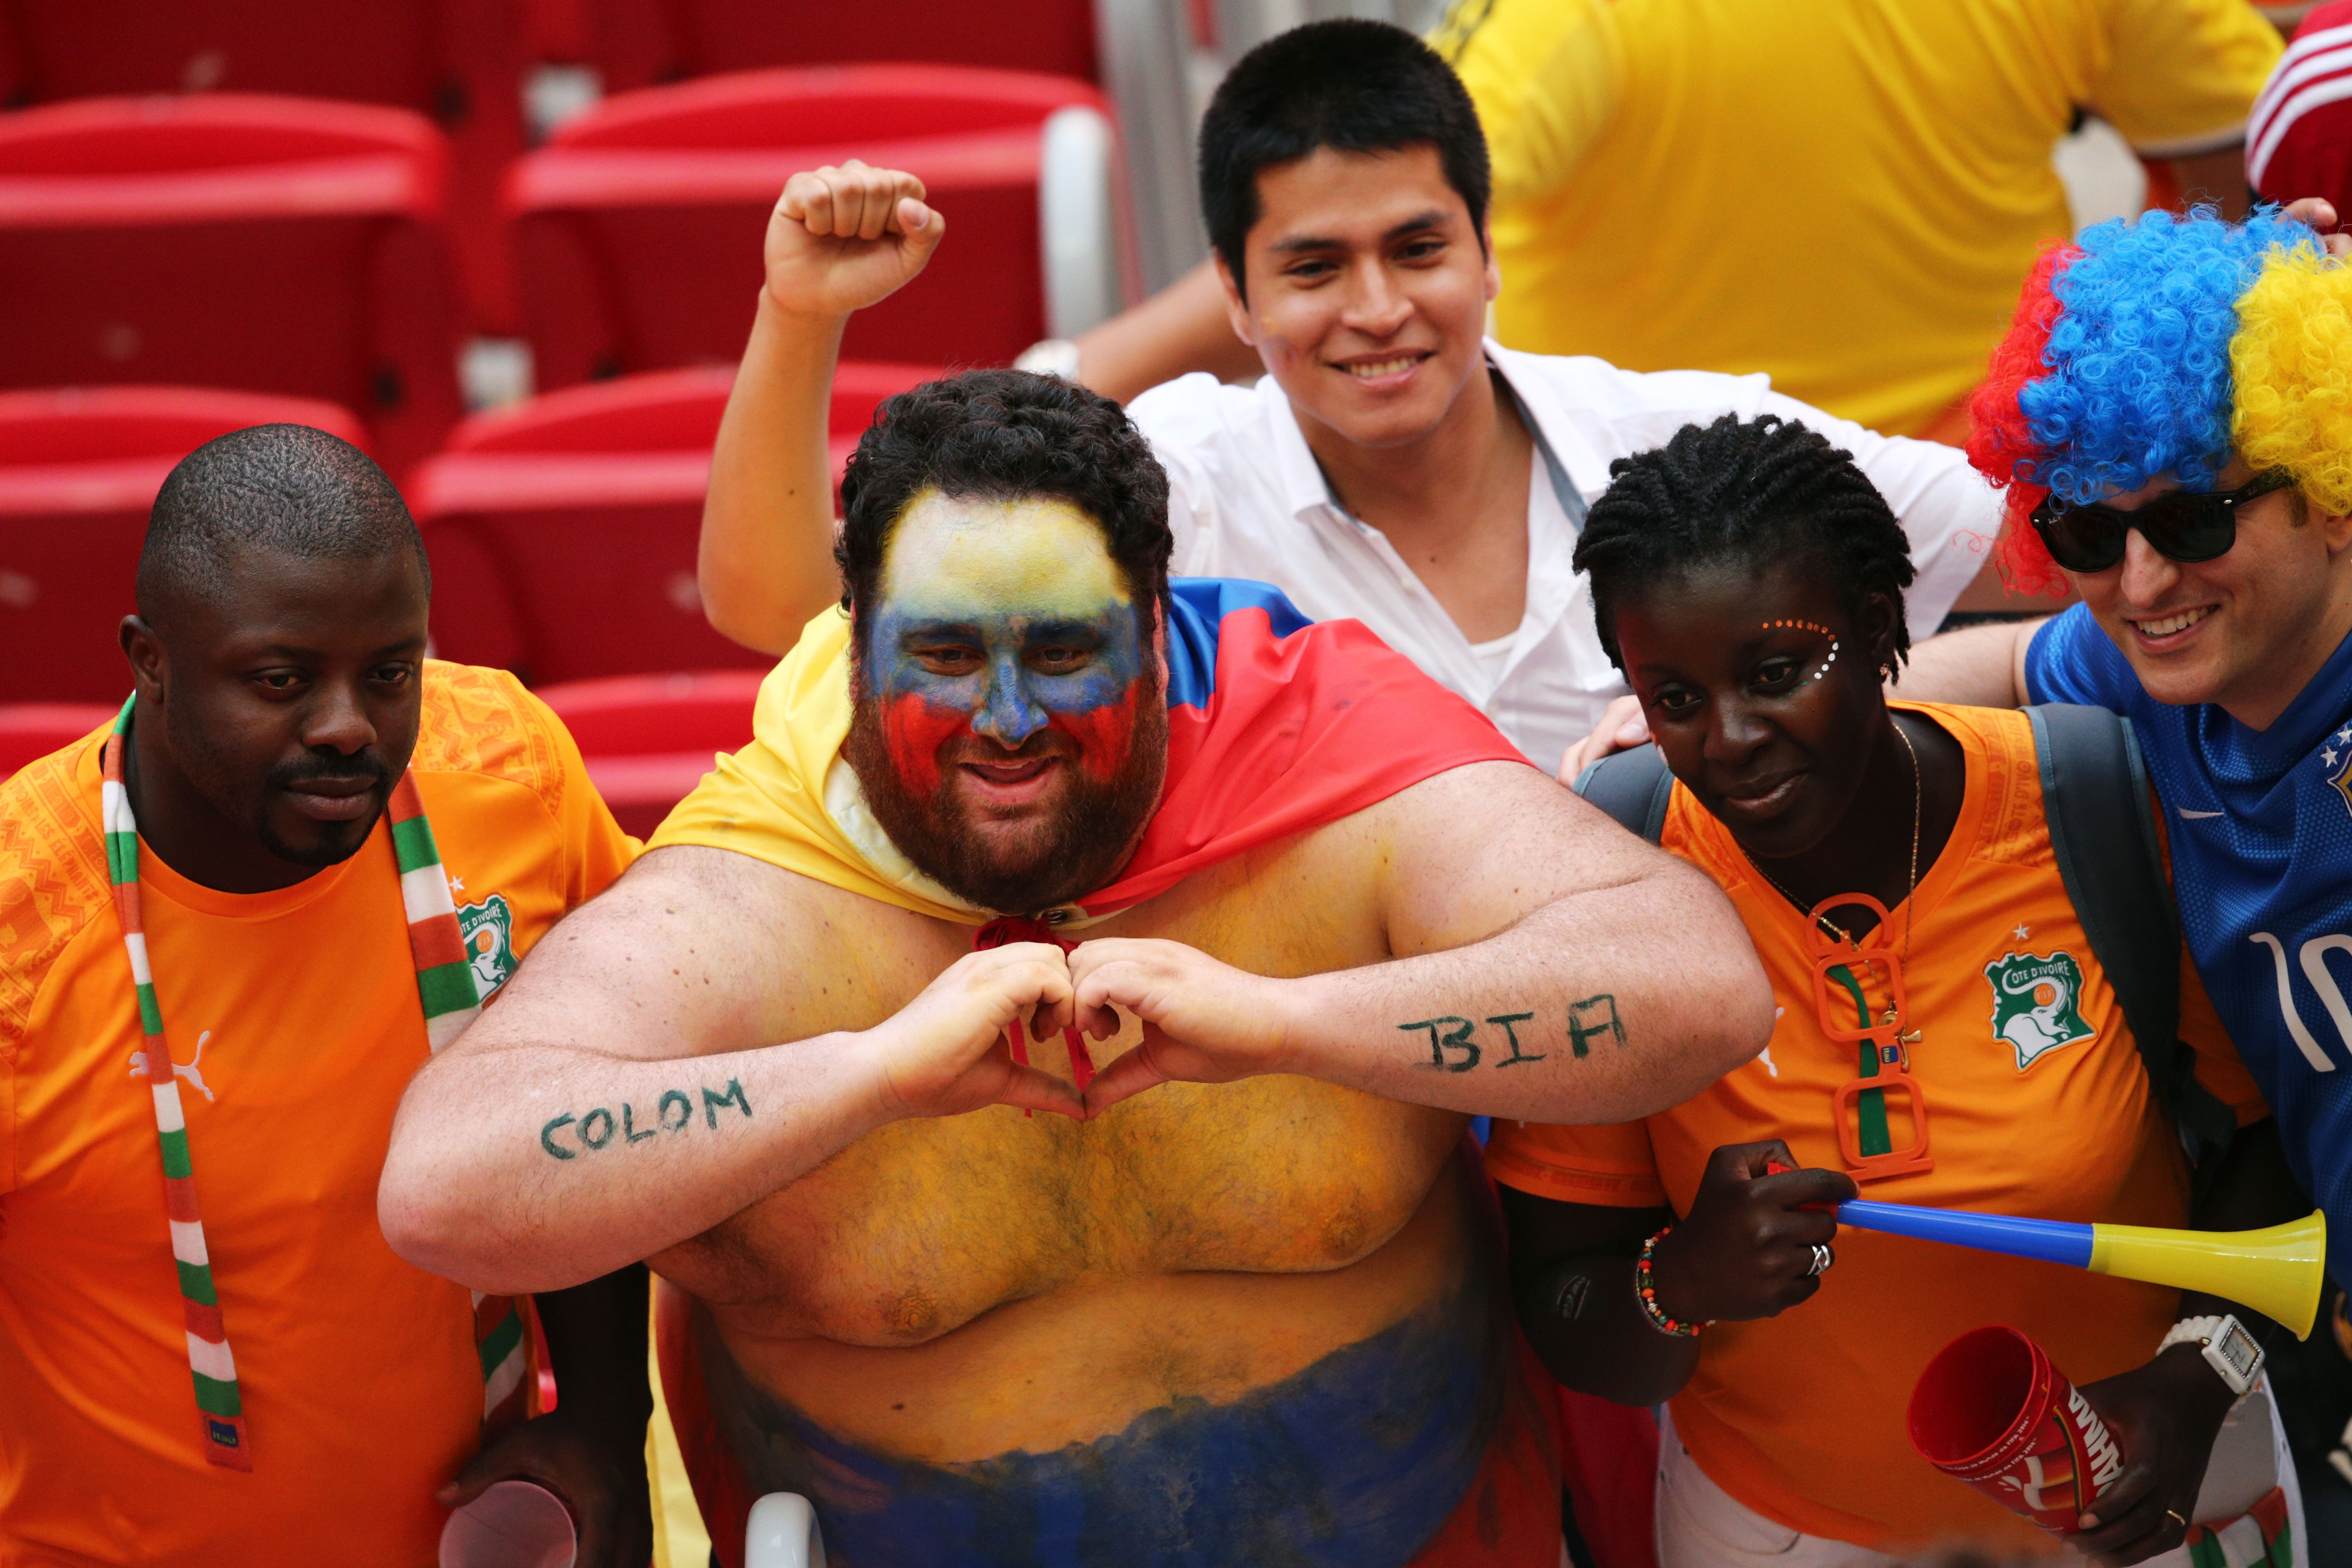 Columbia fan, World Cup 2014